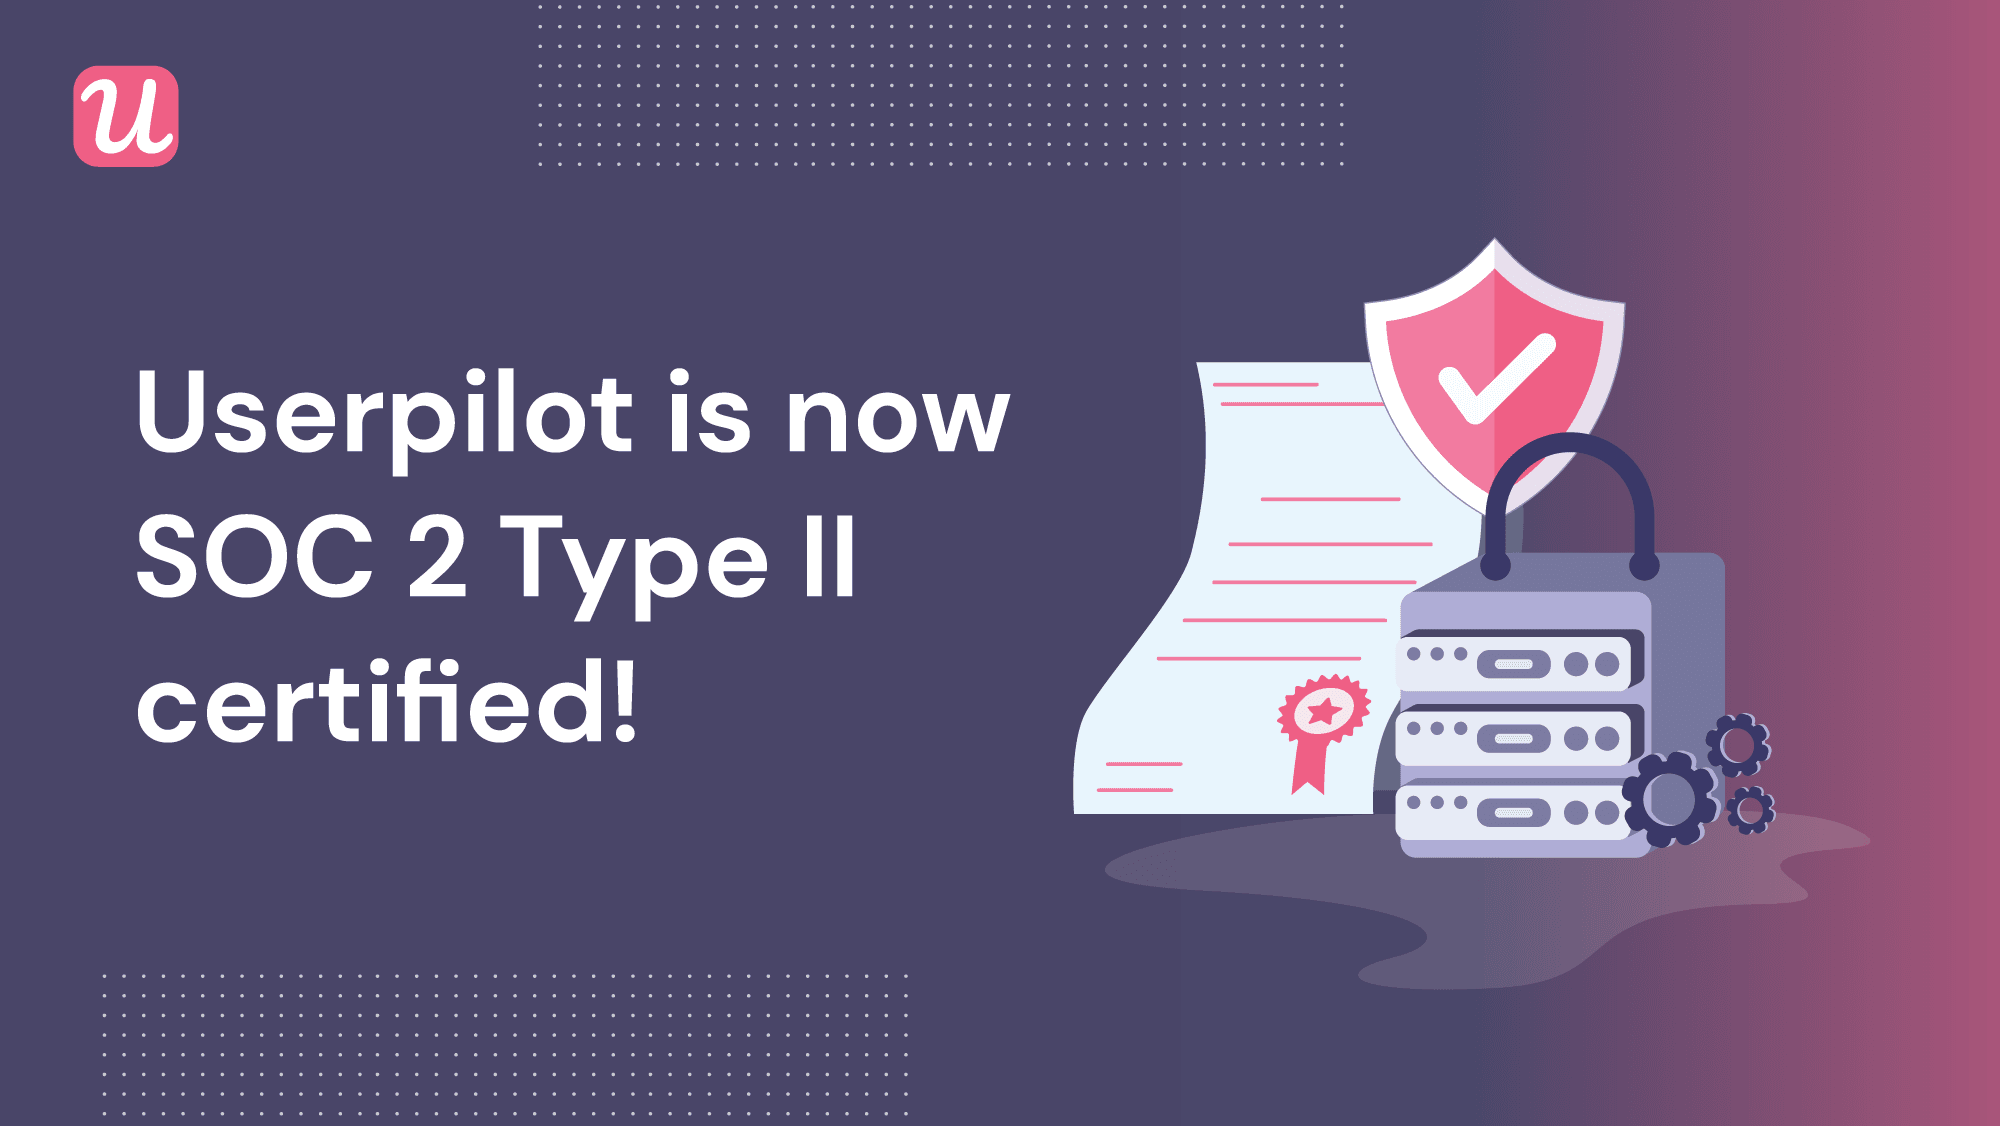 Userpilot is now SOC 2 Type II Certified! Learn About Our Information Security Standards & What It Means For You